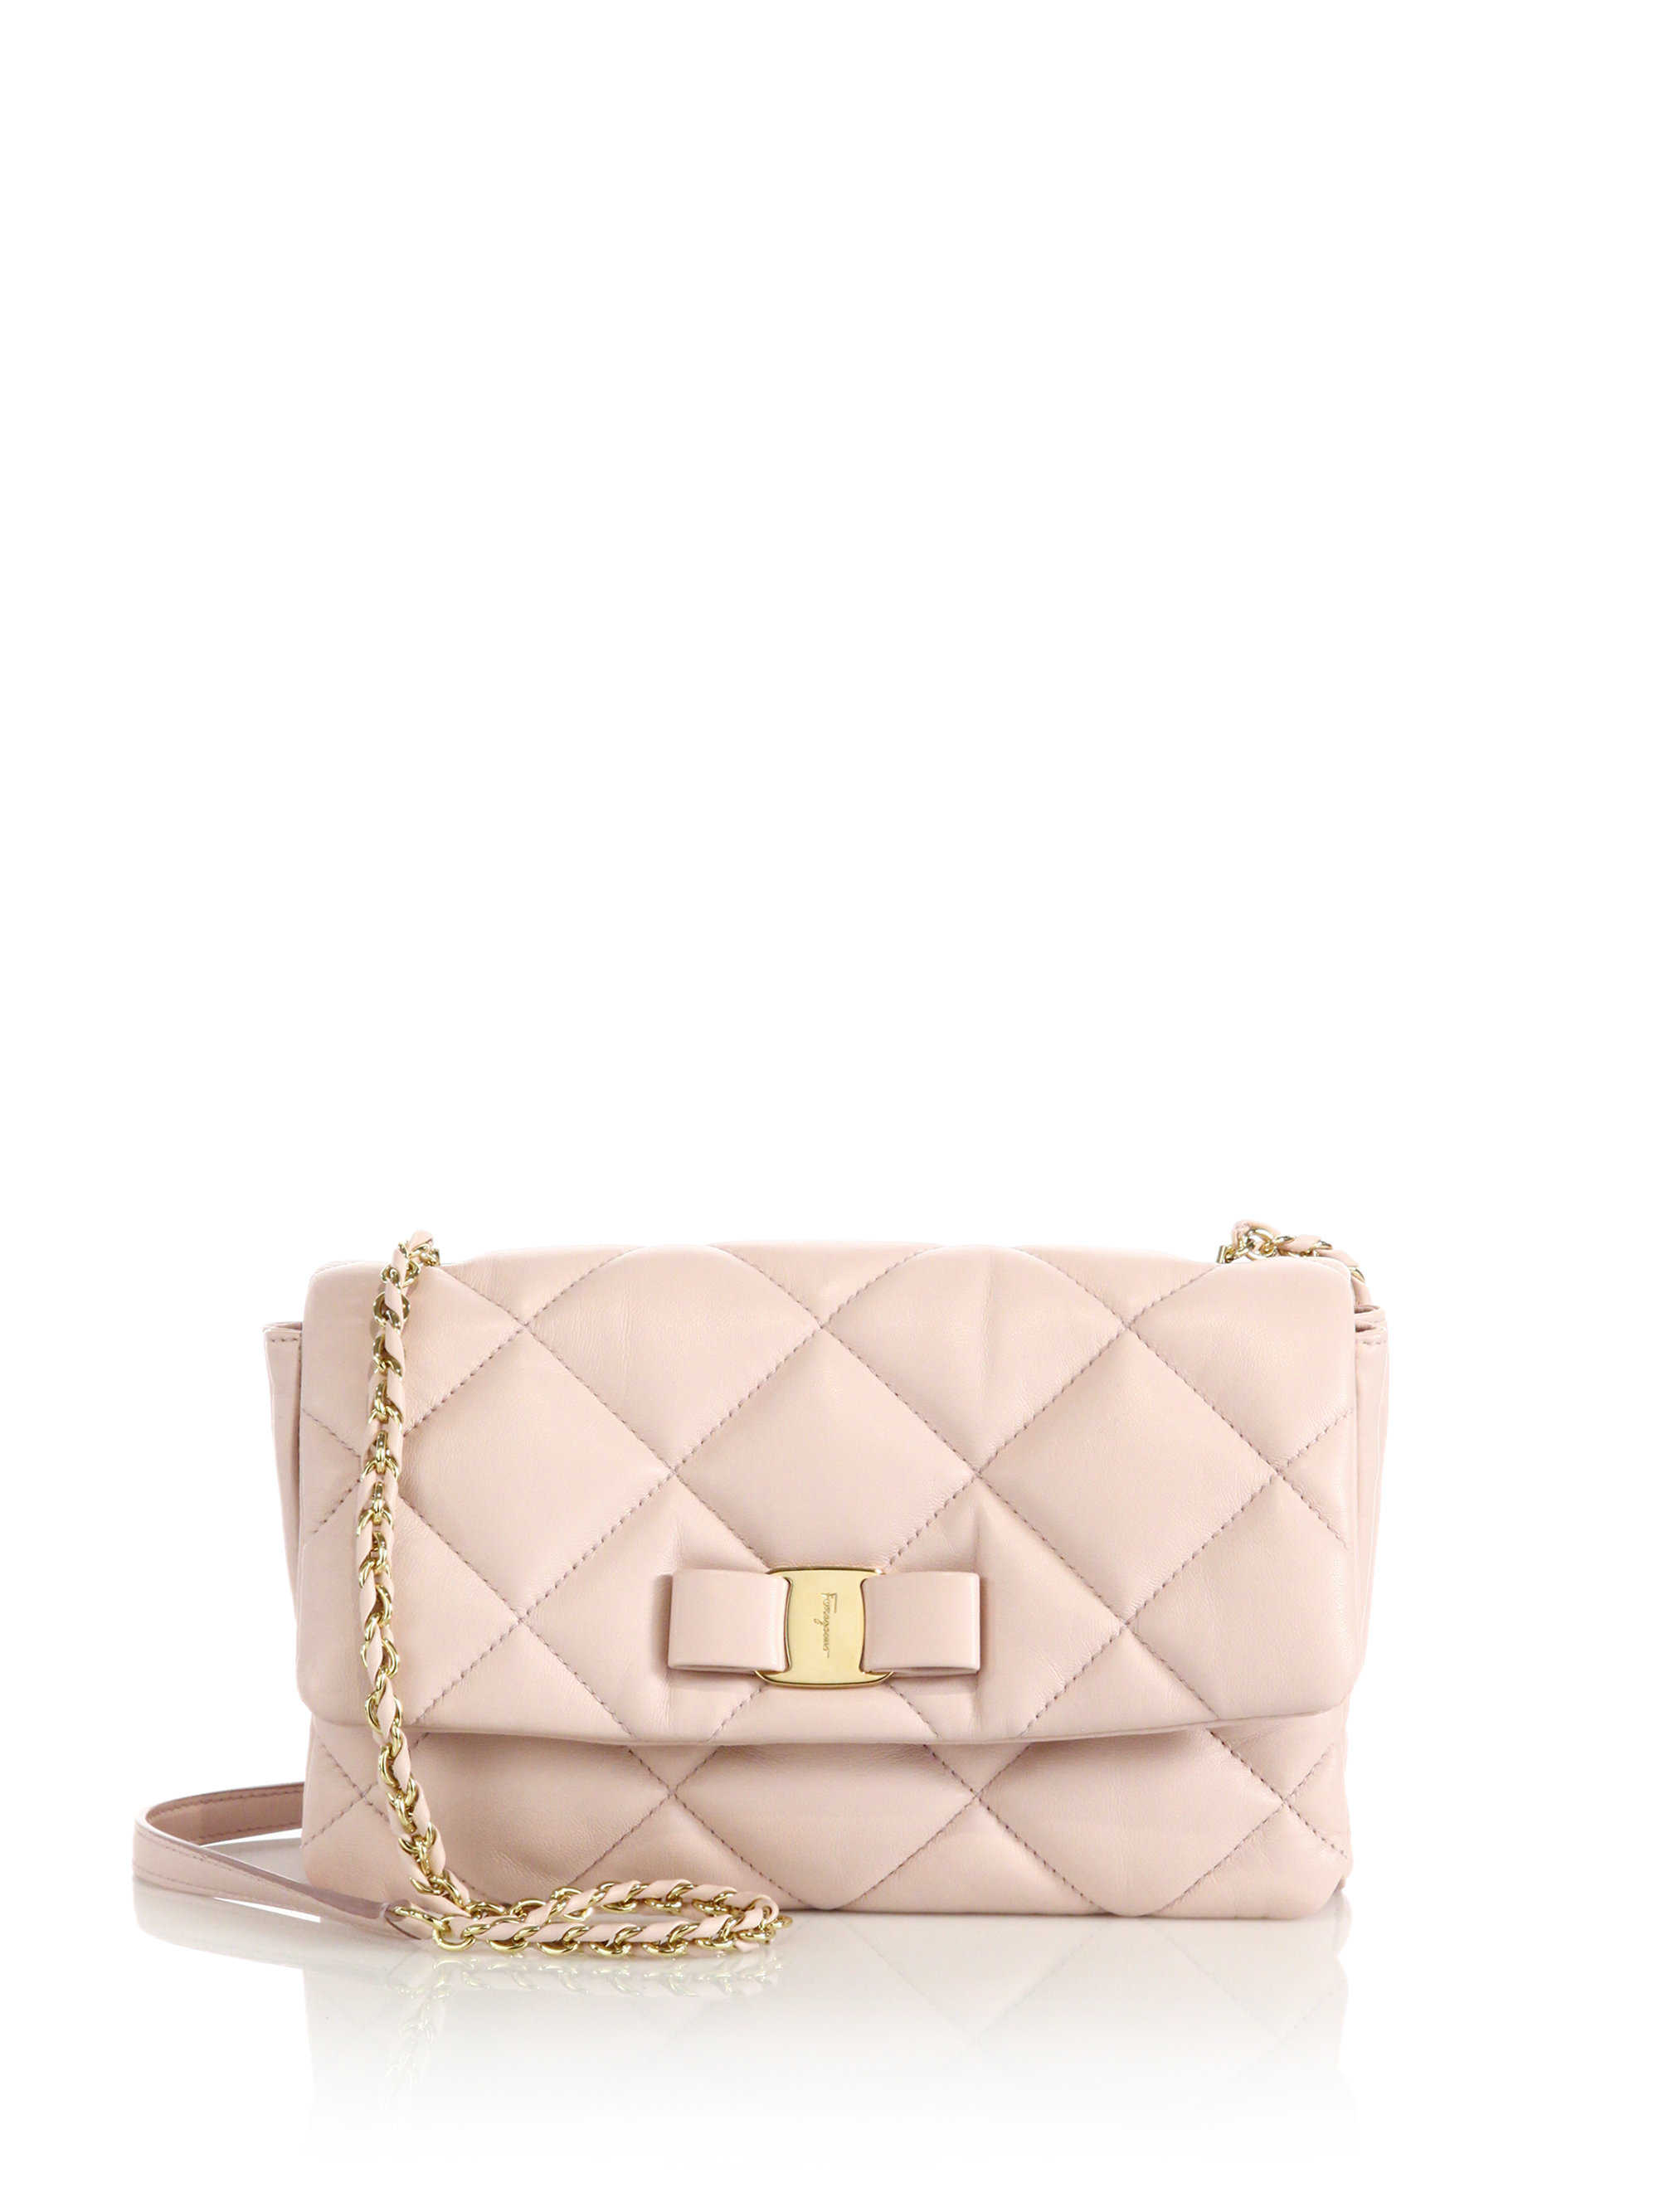 Ferragamo Gelly Quilted Nappa Leather Shoulder Bag in Natural | Lyst